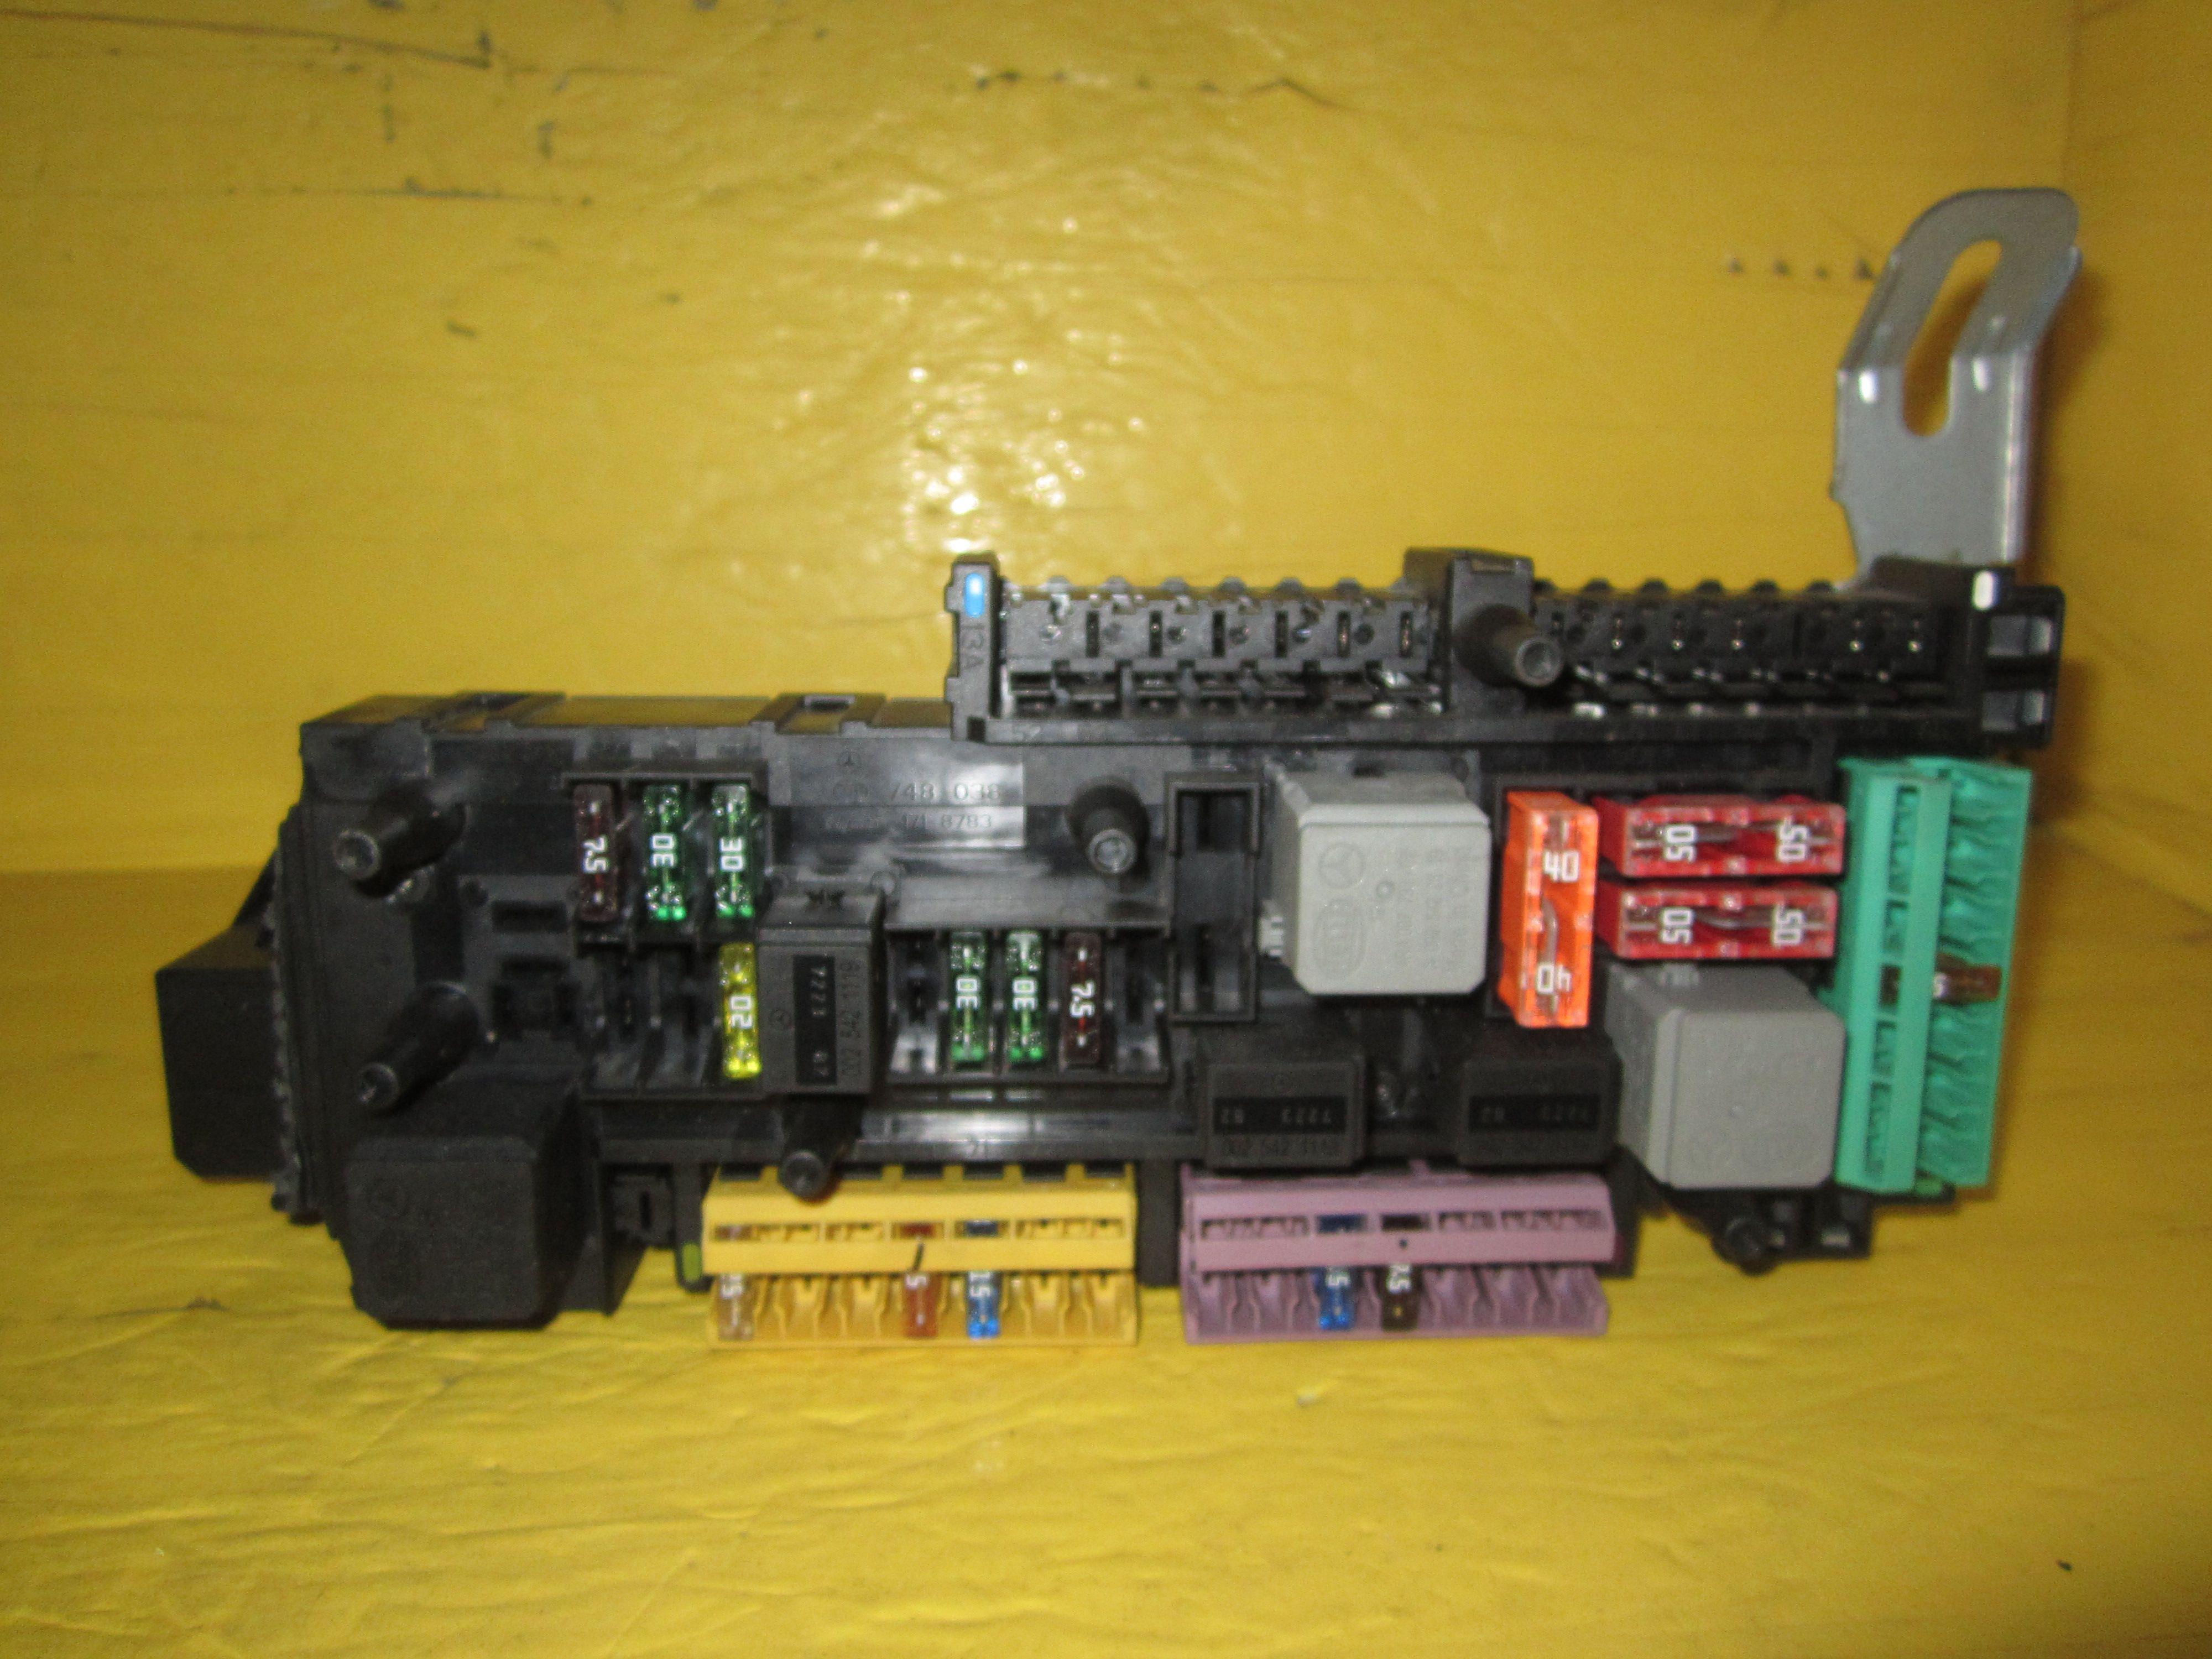 2008 C350 Mercedes Fuse Box Electrical Wiring Diagrams C230 This Is For Benz Please Compare The Part